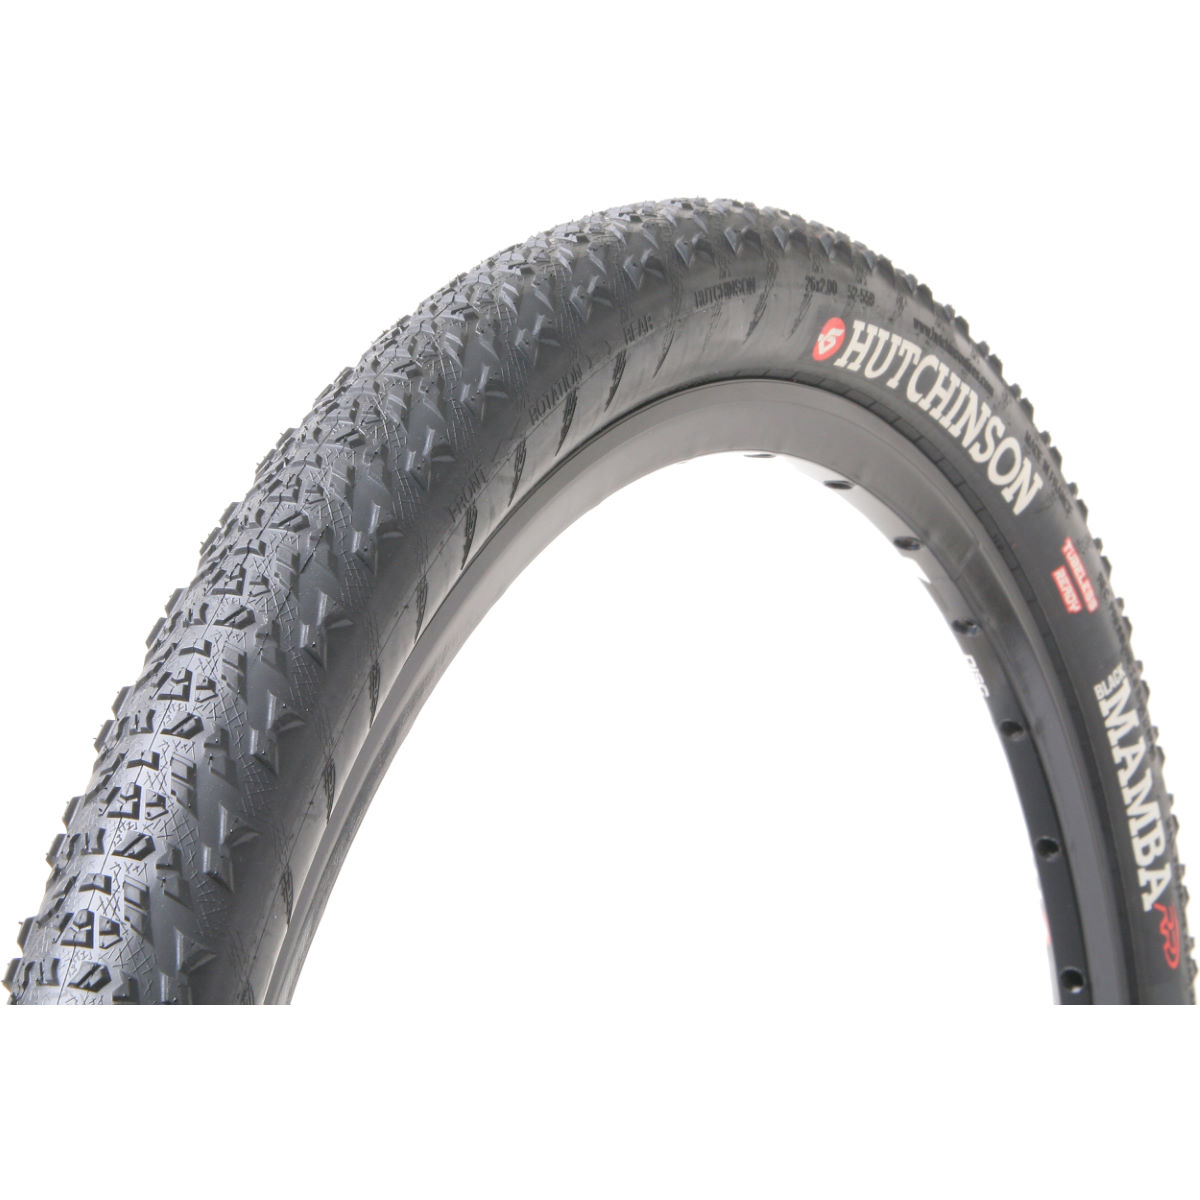 Pneu de cyclo-cross Hutchinson Black Mamba (souple) - 700 x 34c Noir Pneus cyclo-cross